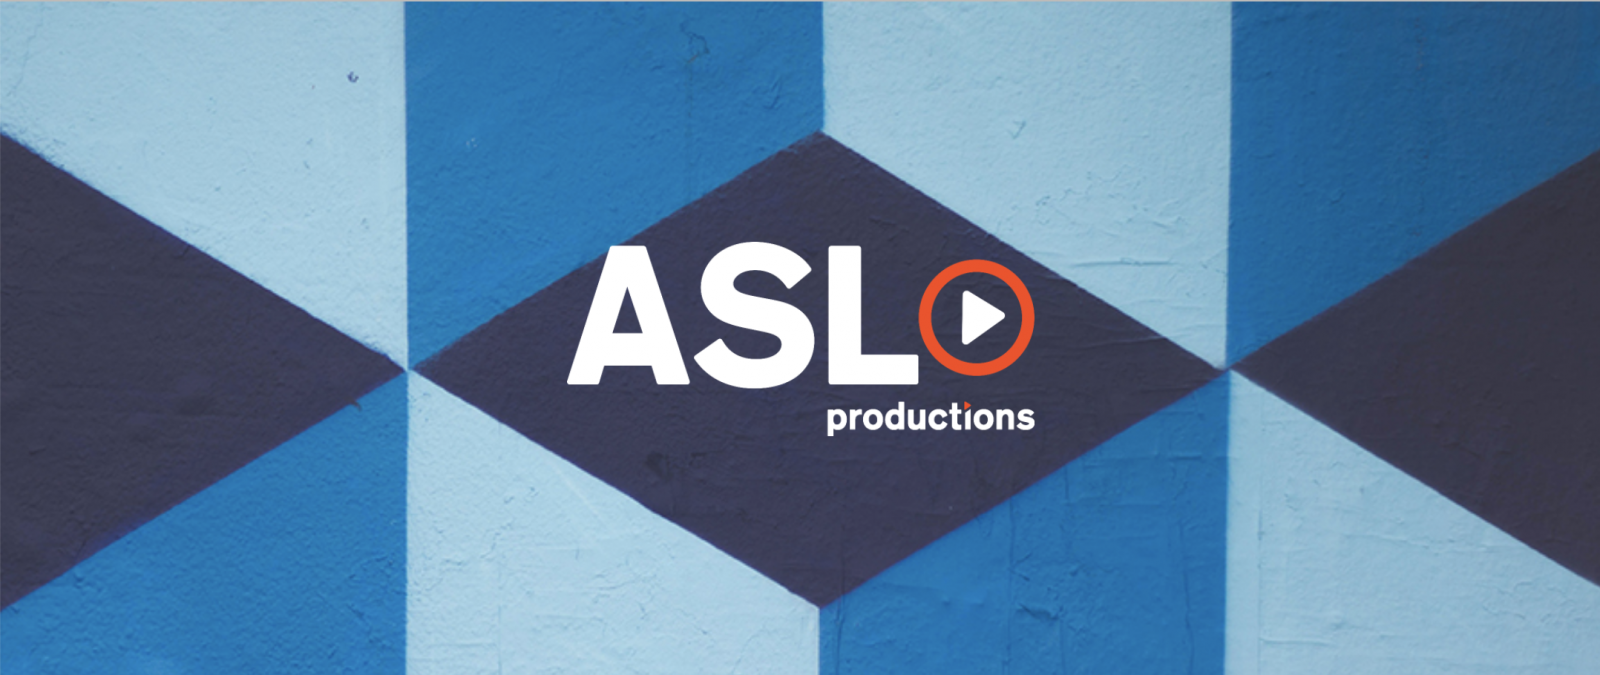 ASL PRODUCTIONS : INTEL VIDEO CASE STUDY